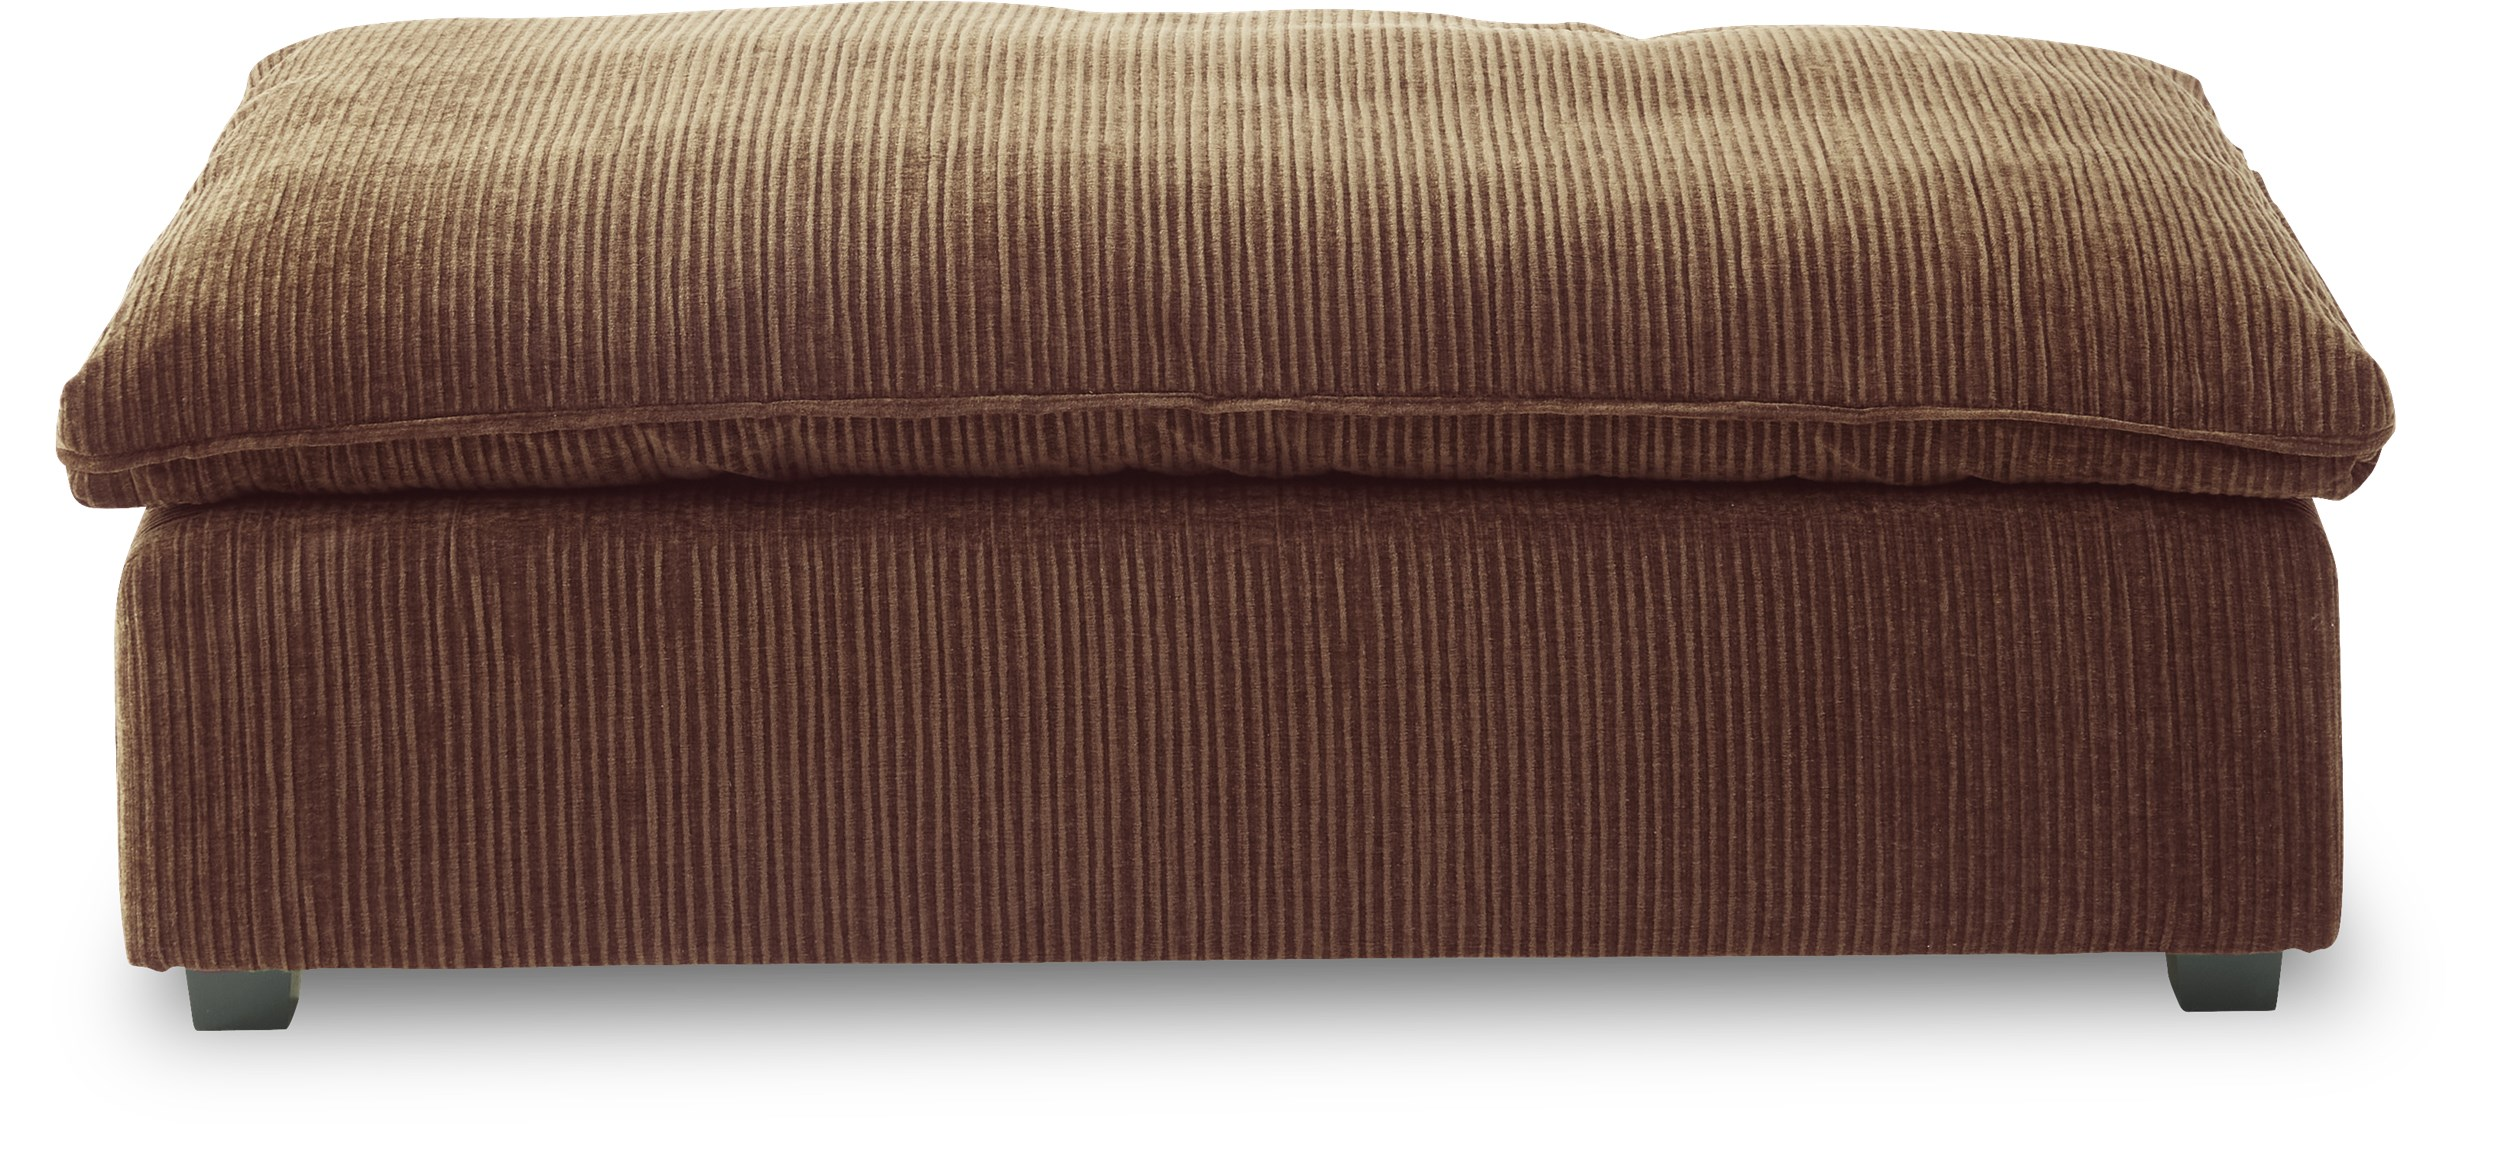 Heaven Sofa puf - Diamond 1126 Brown stof og ben i sortmalet træ